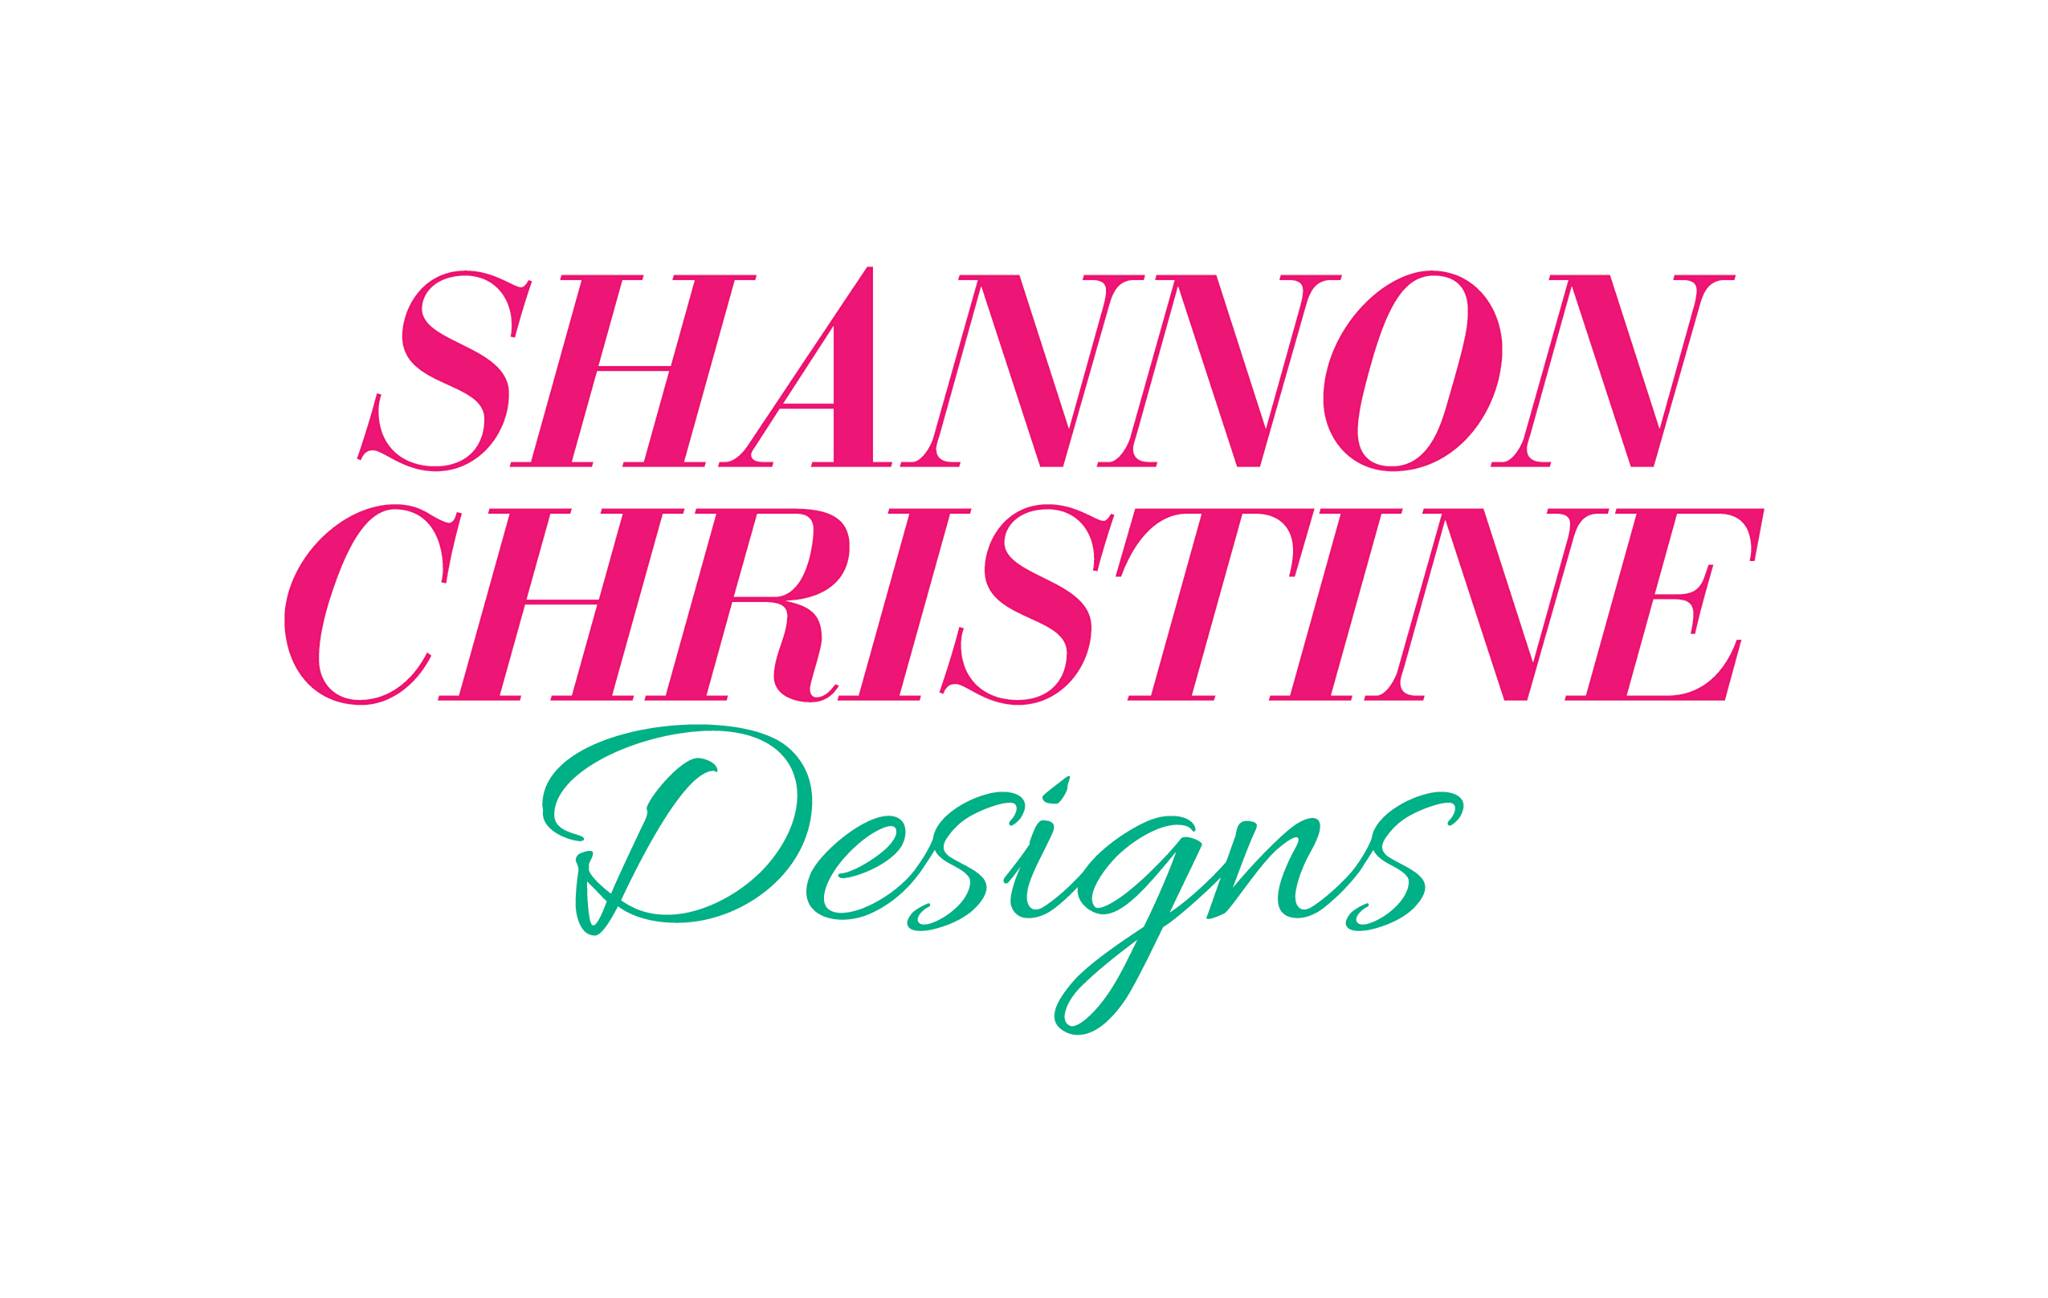 Shannon Christine Designs